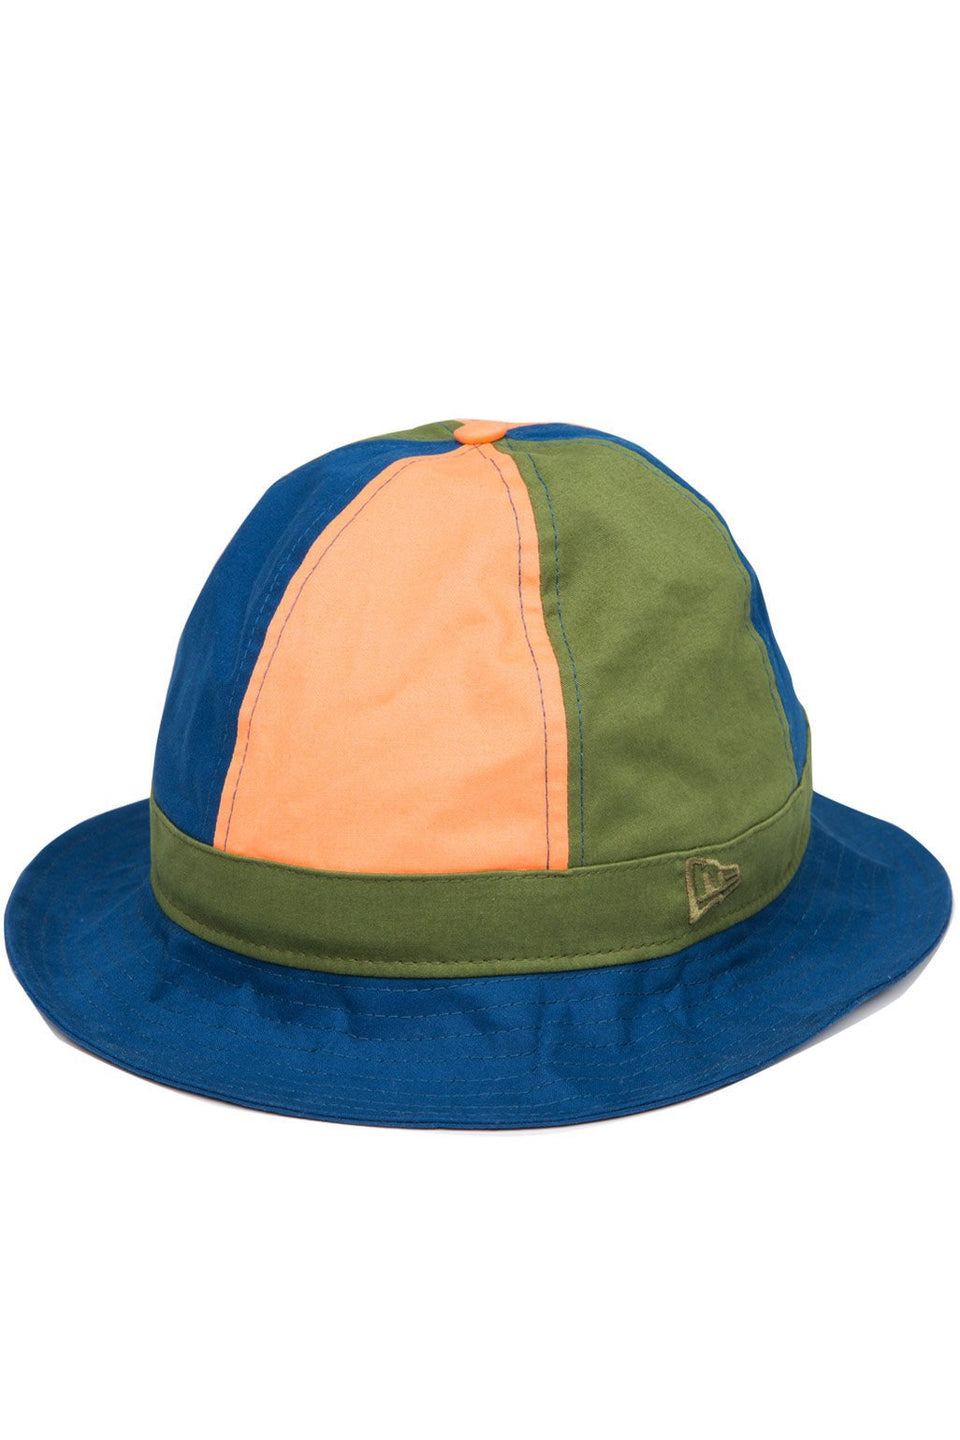 Pinwheel Bucket Hat